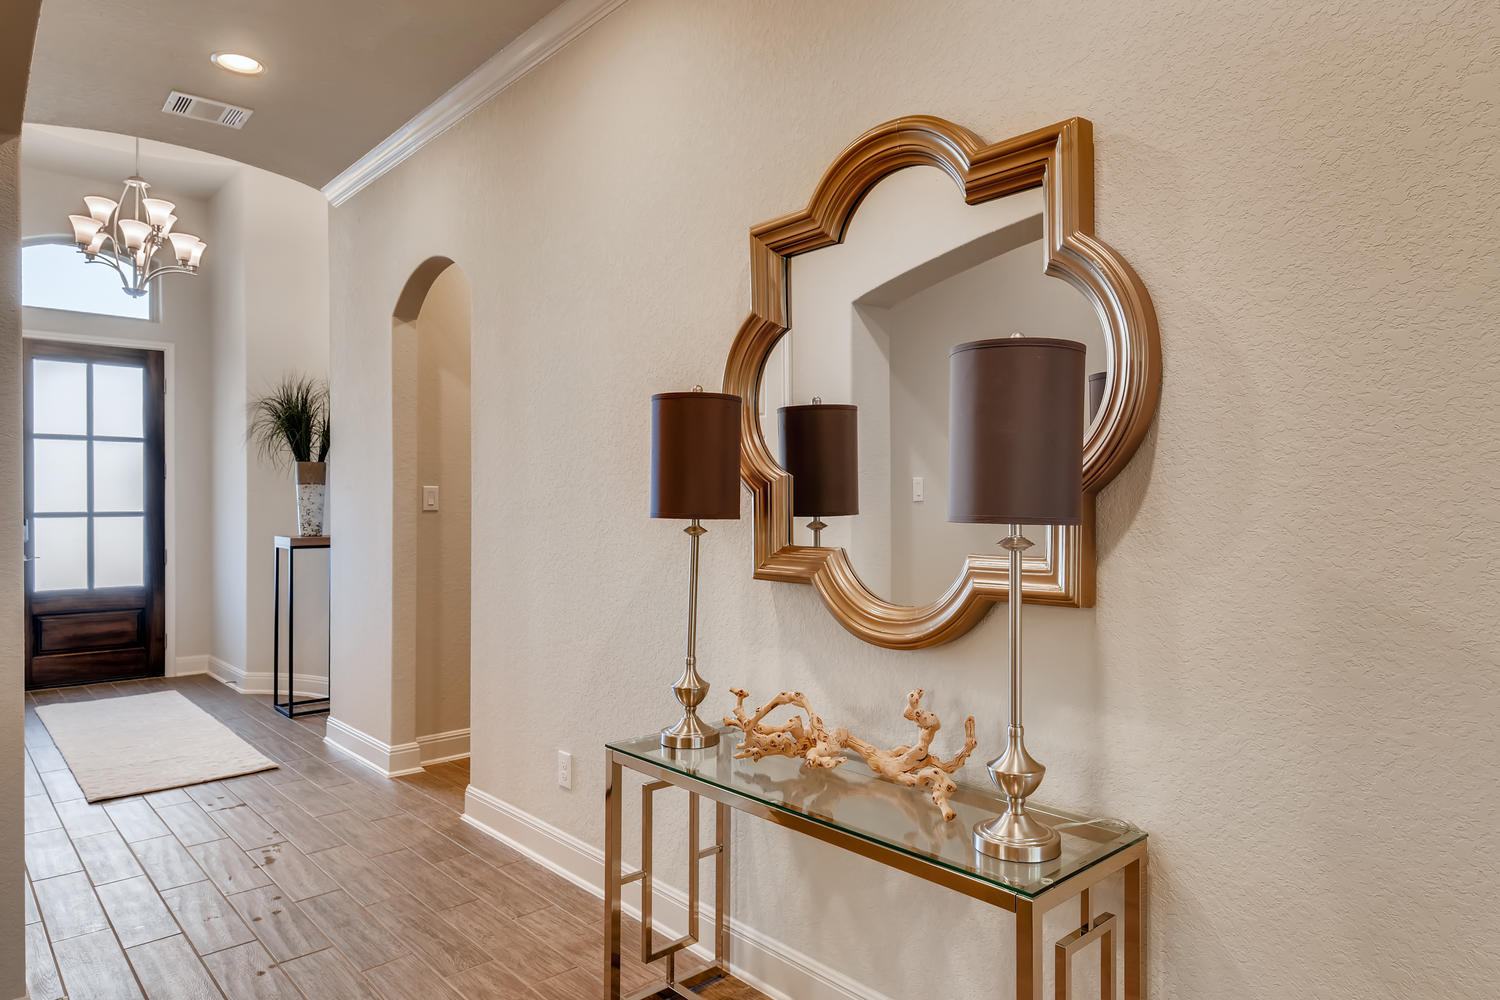 Full home staging in Las Vegas, Nevada, featuring a staged entryway